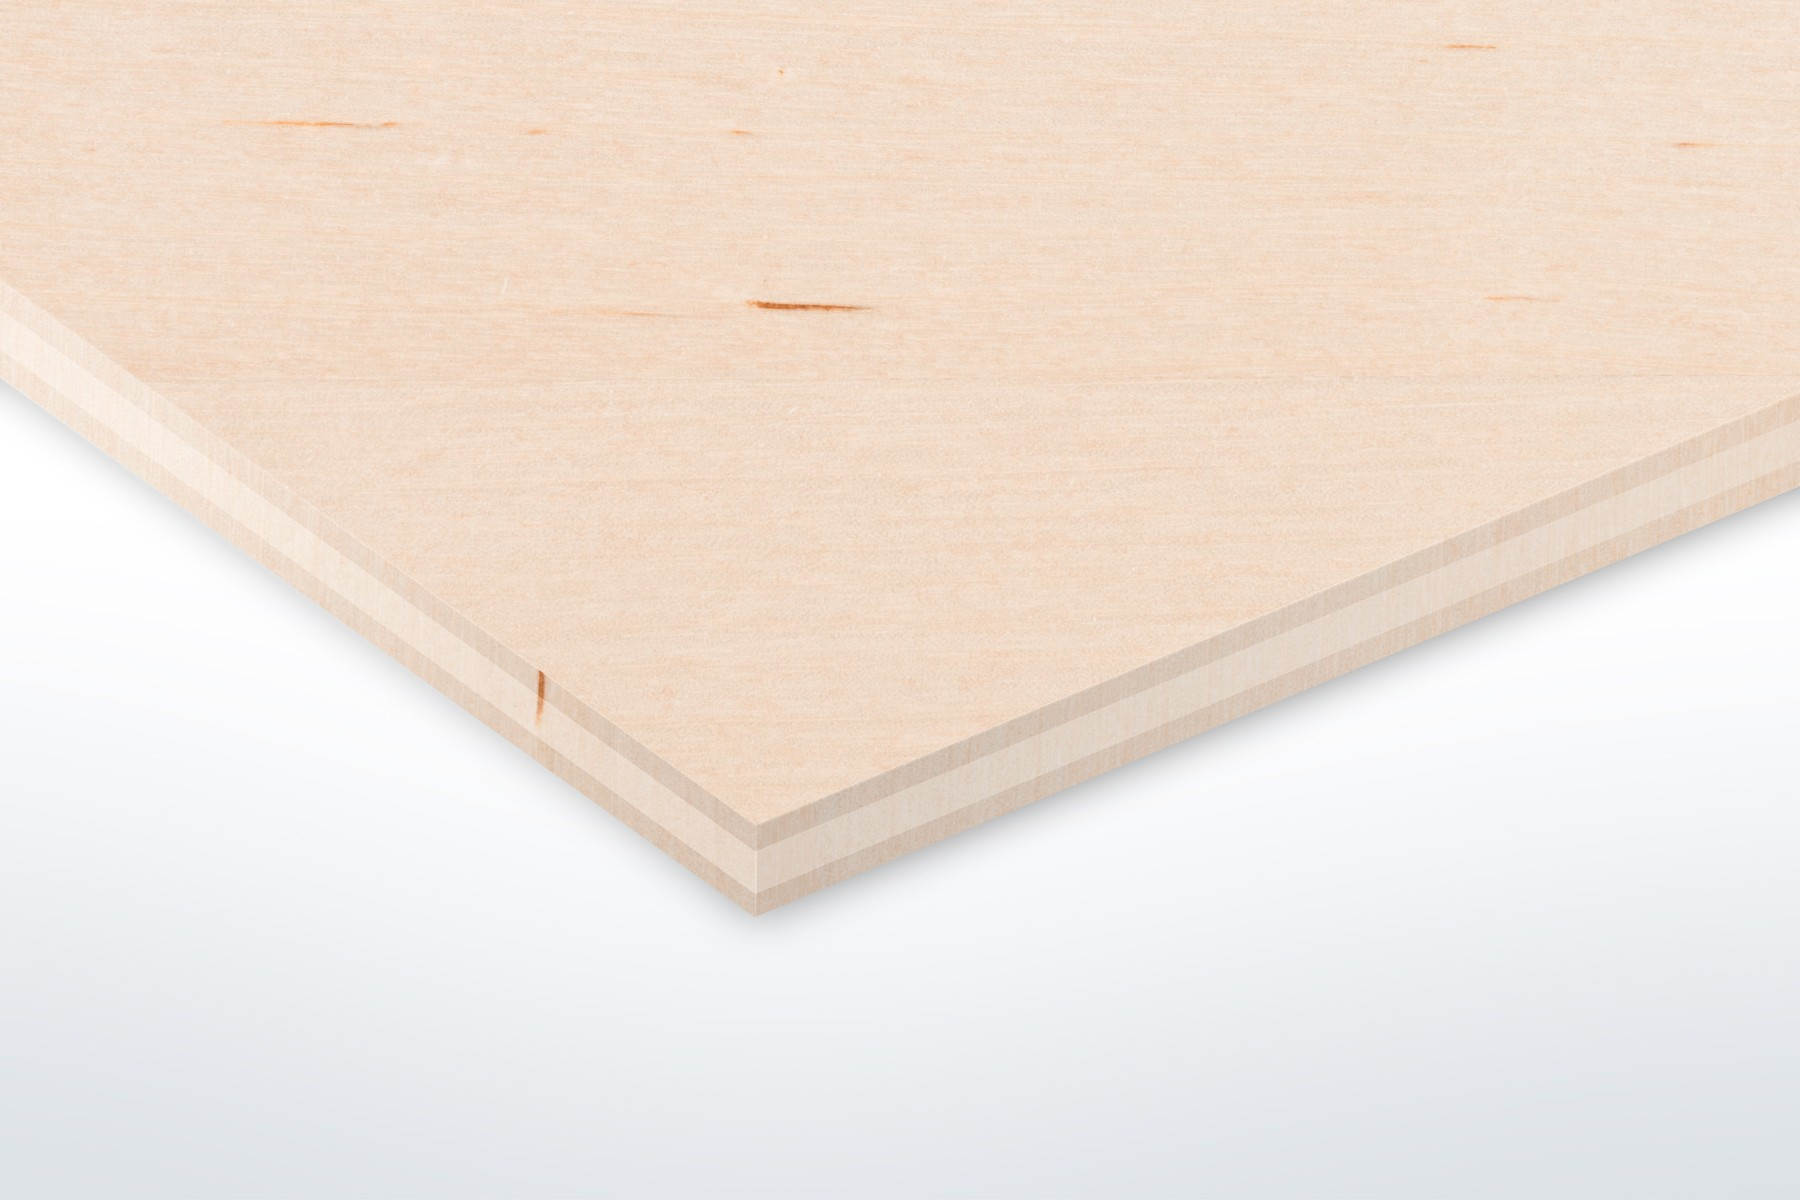 Plywood - 600 x 300mm - 6mm